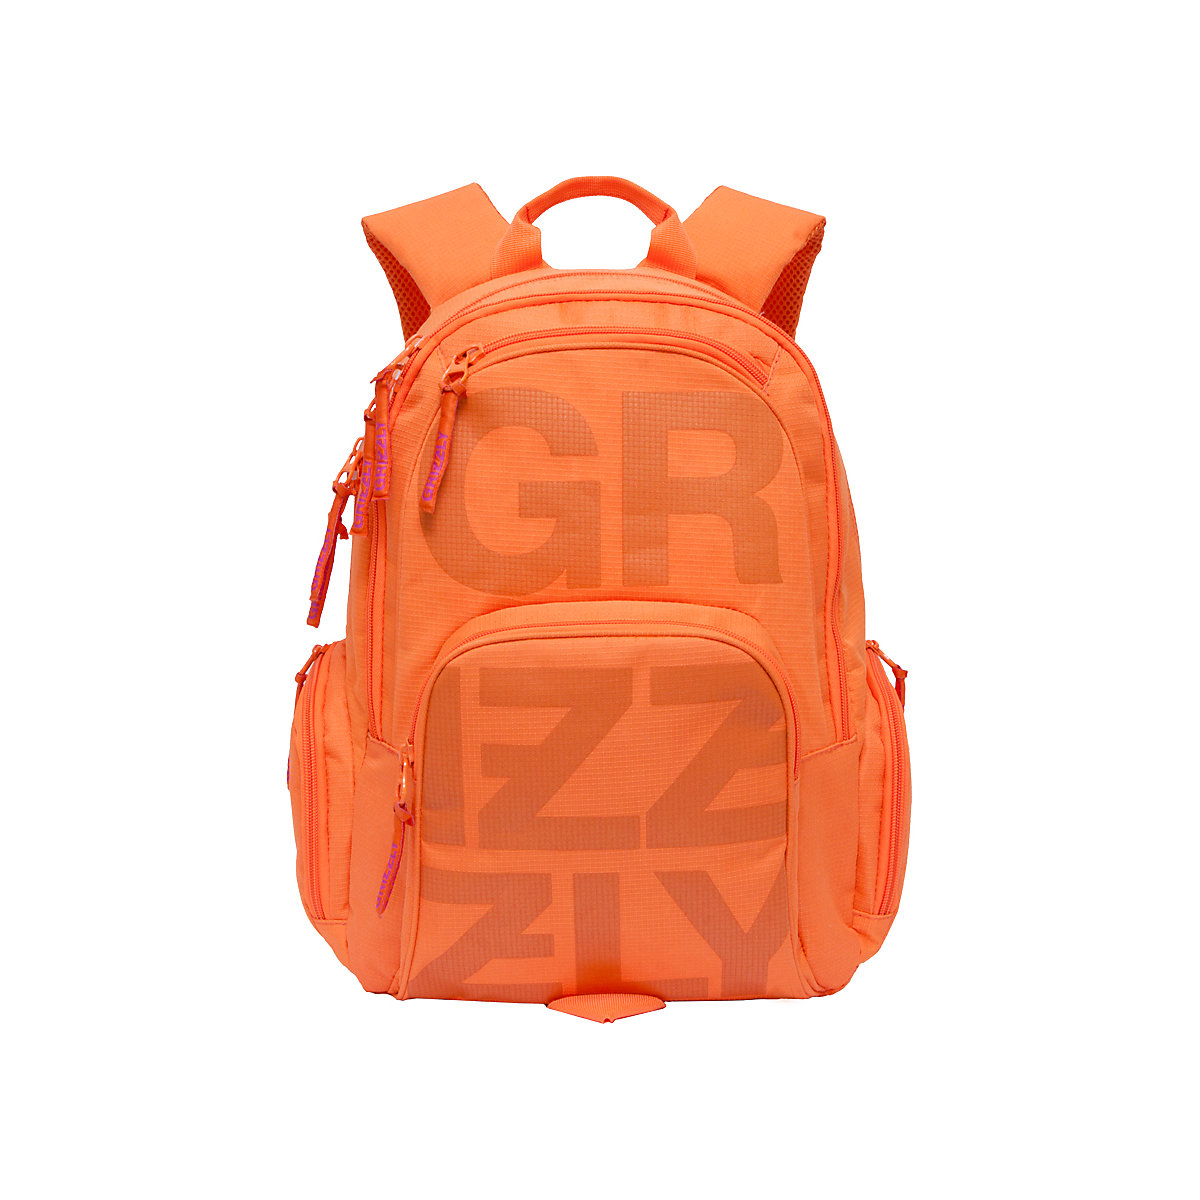 GRIZZLY School Bags 11238353 Schoolbag Backpack Orthopedic Bag For Boy And Girl Animals MTpromo